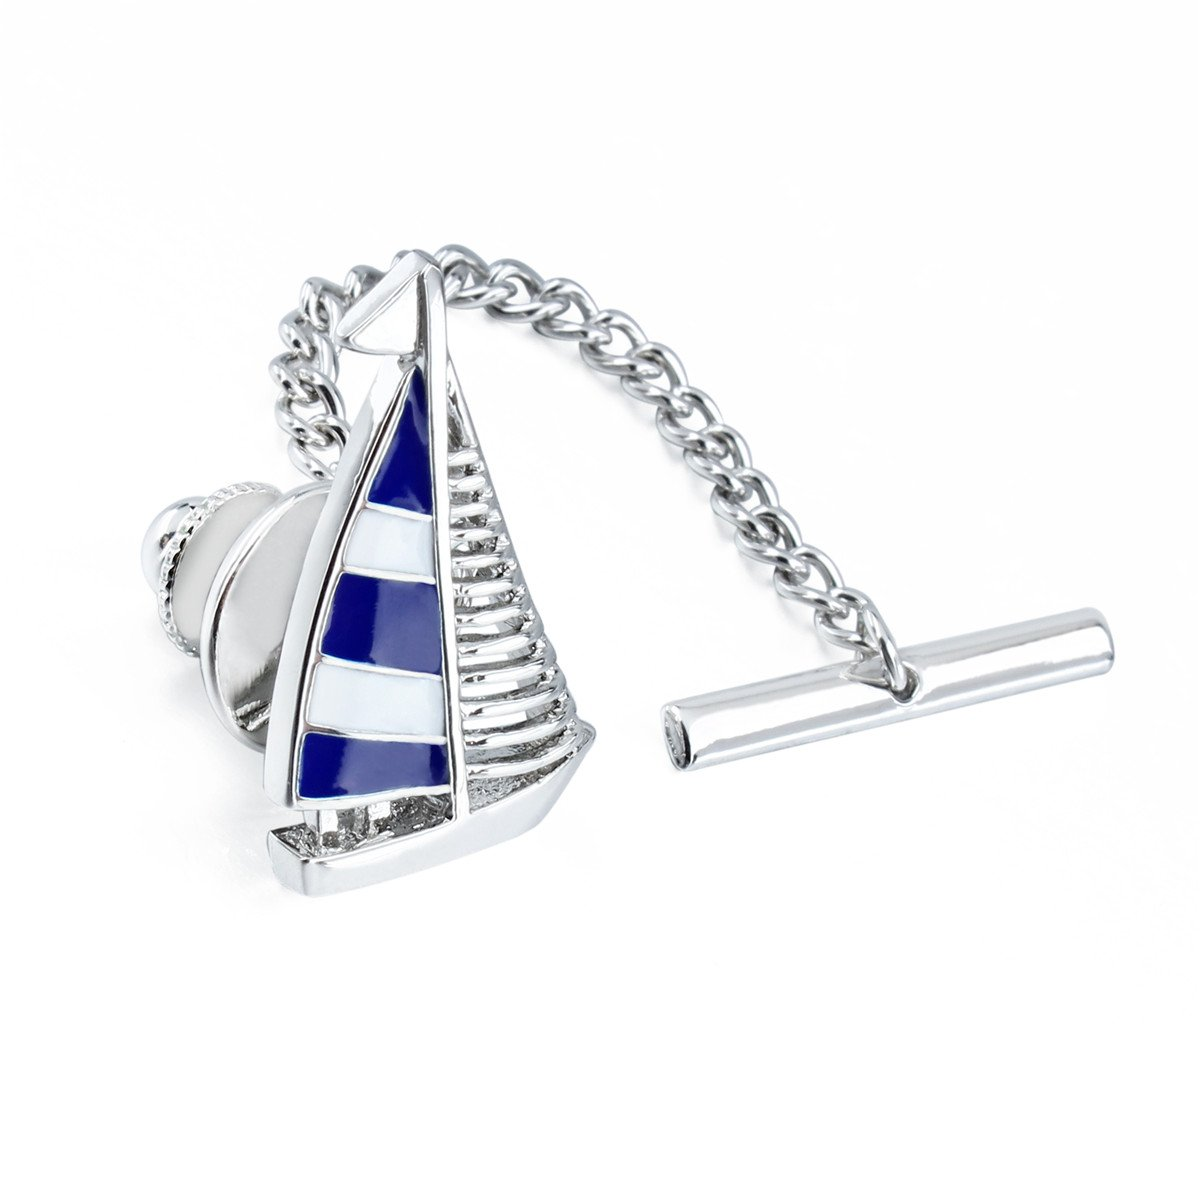 HAWSON Blue Tie Clip Tie Tack with Clucth Back Wedding Party Accessories - Sailing Boat Shape by HAWSON (Image #3)